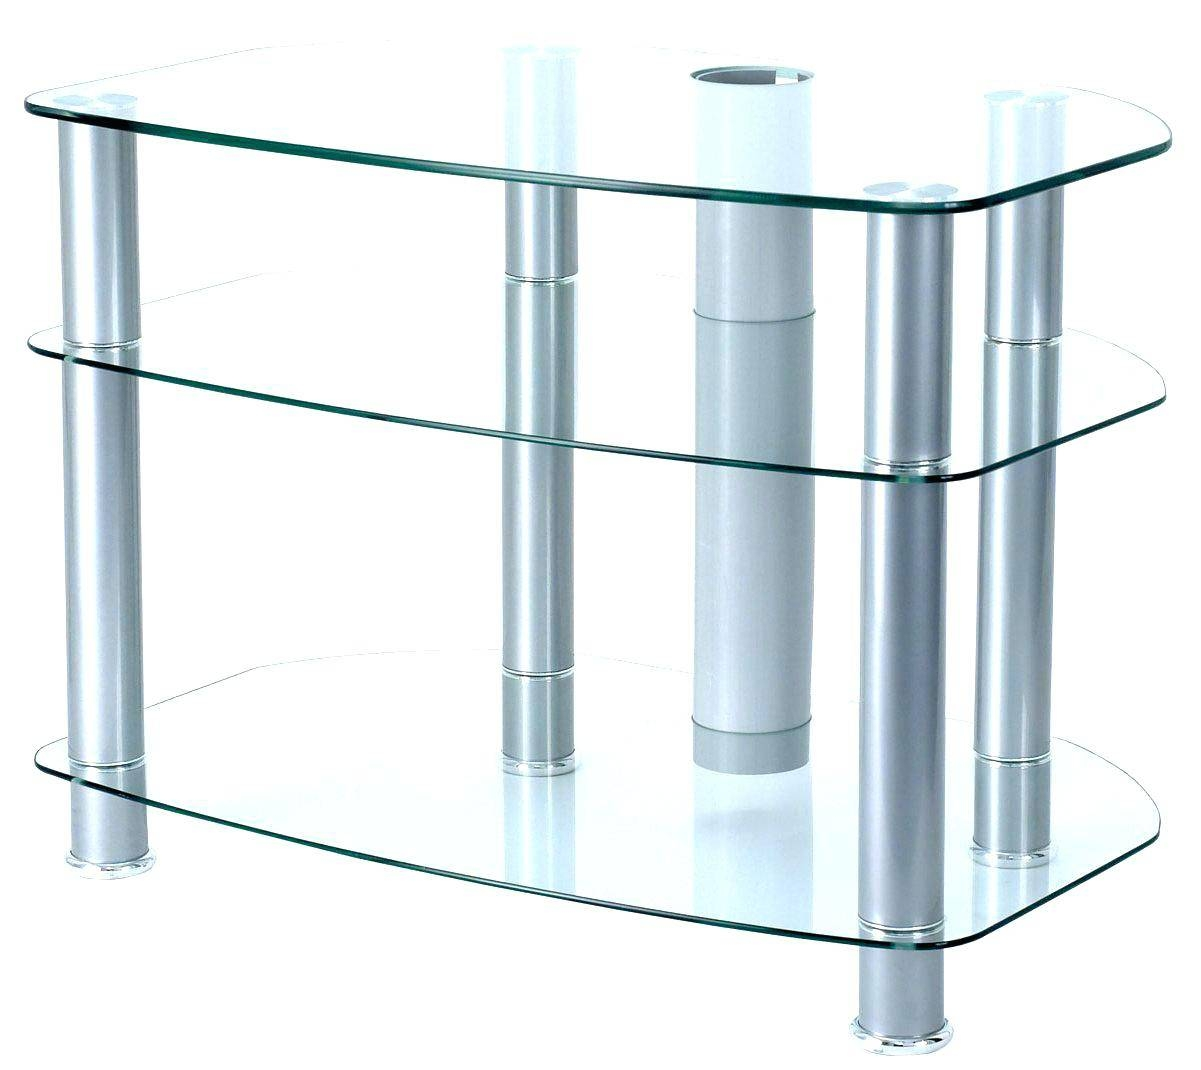 Tv Stand : Small Glass Tv Stand 6 48 Terrific Small Glass Tv Stand within Clear Glass Tv Stand (Image 14 of 15)